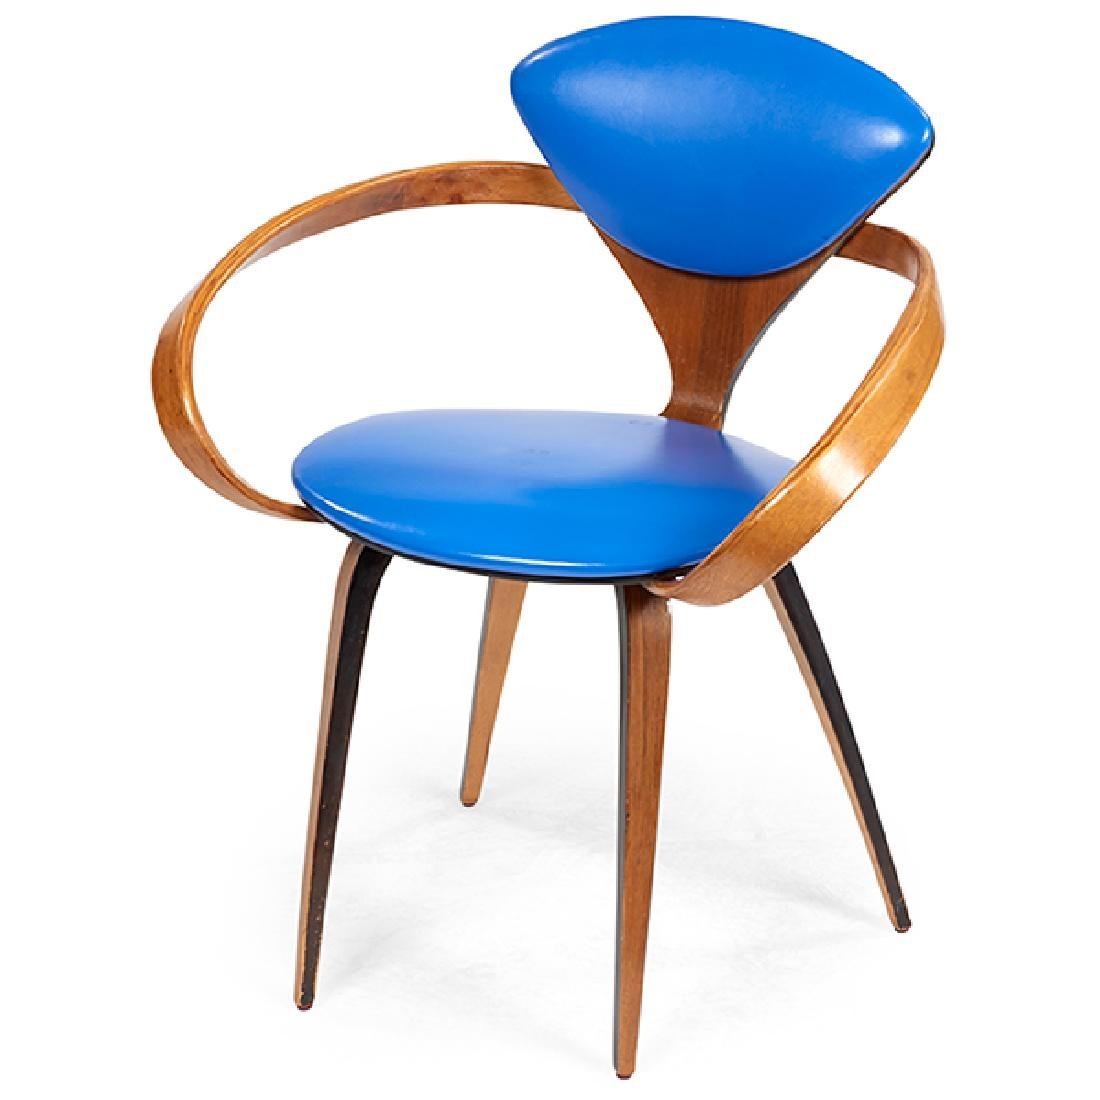 Norman Cherner (1920-1987) for Plycraft, Inc. armchair